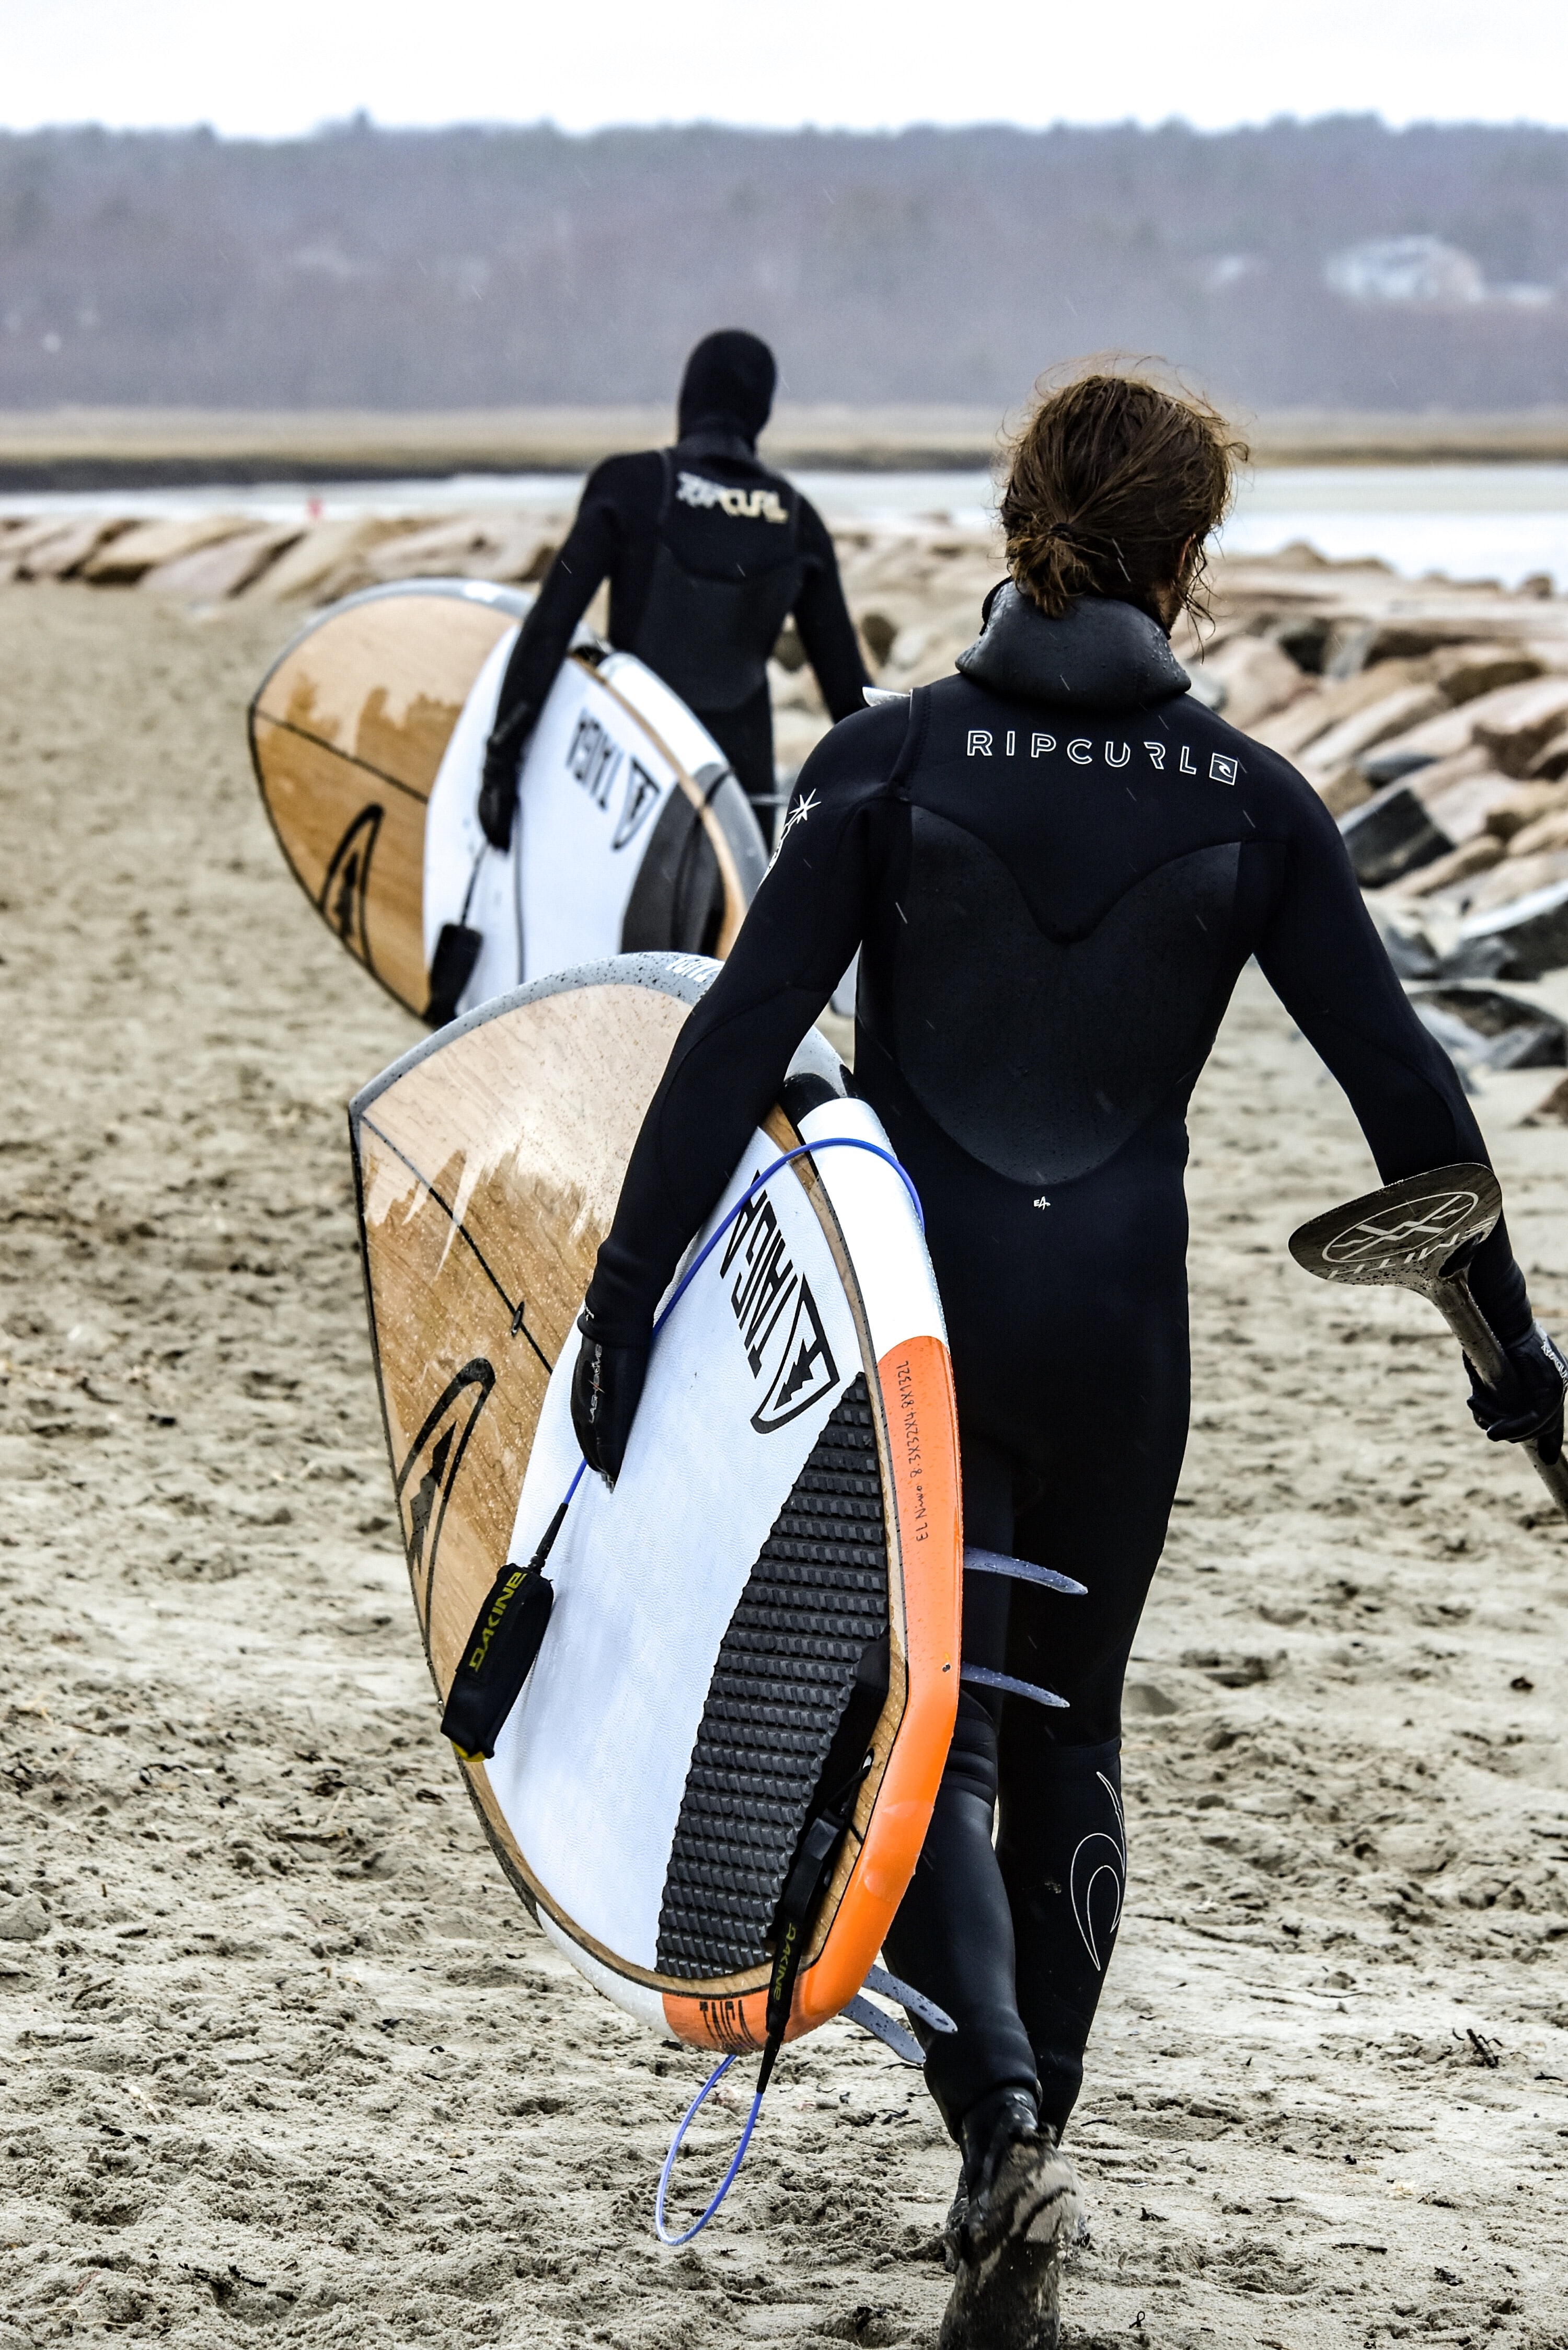 two person walking towards body of water while carrying surfboards